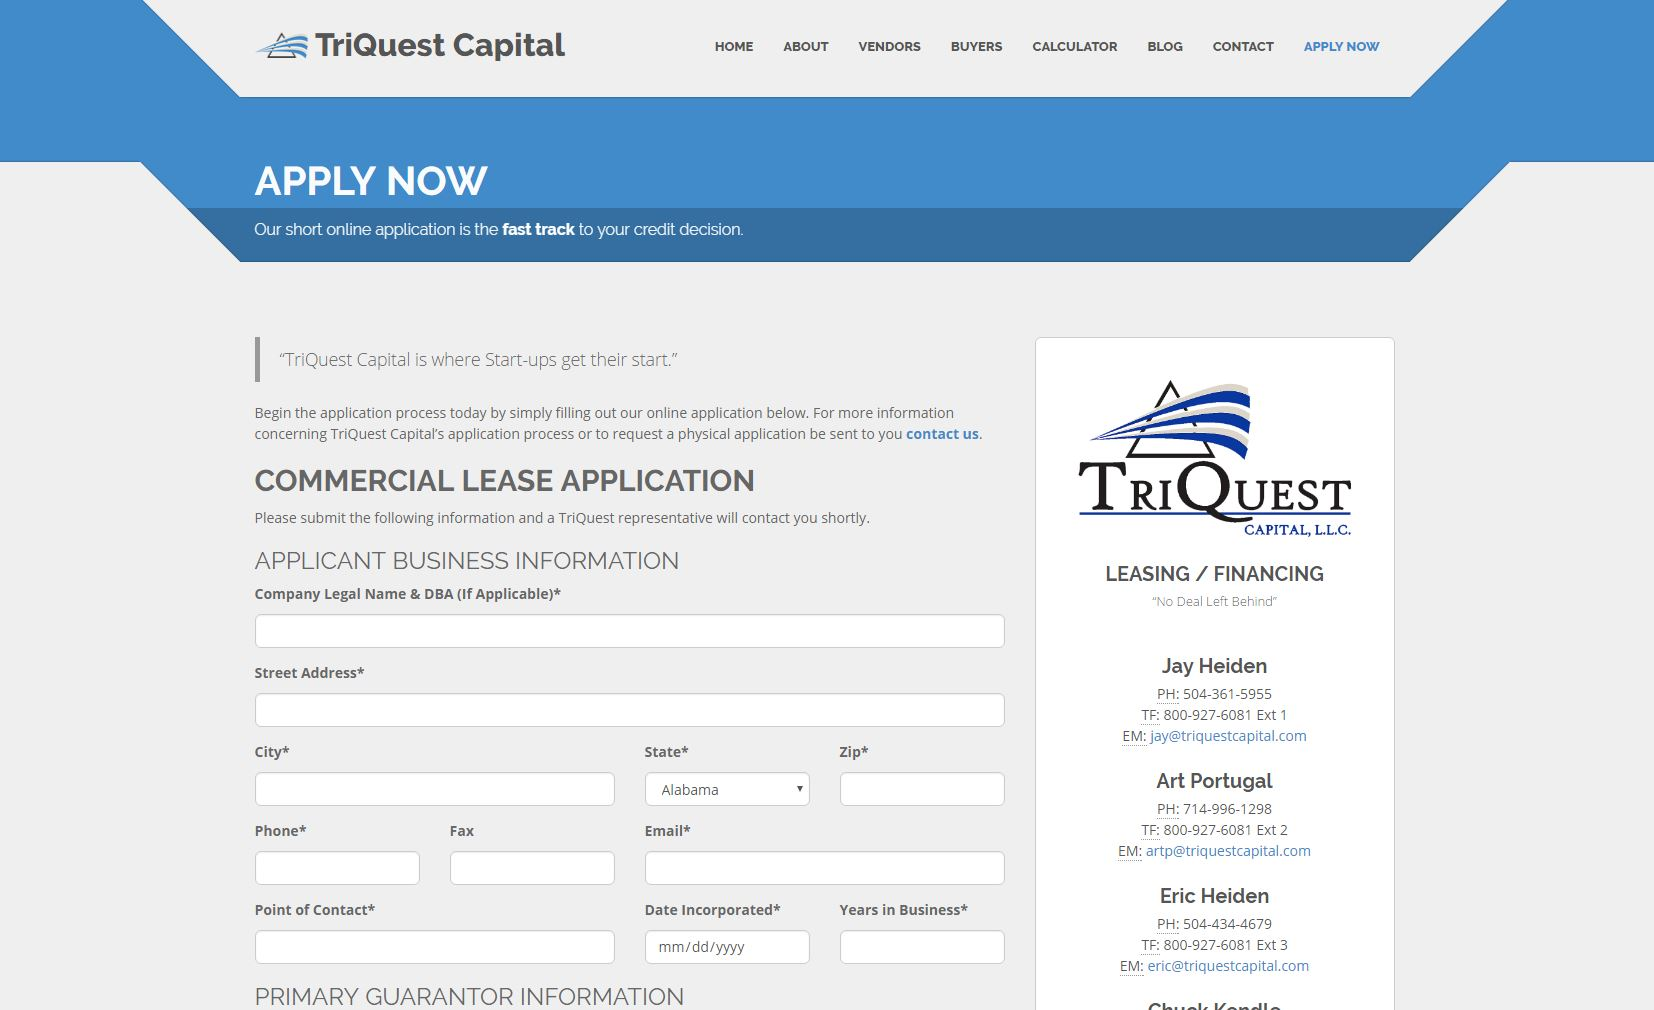 Finance Website Design tqc3